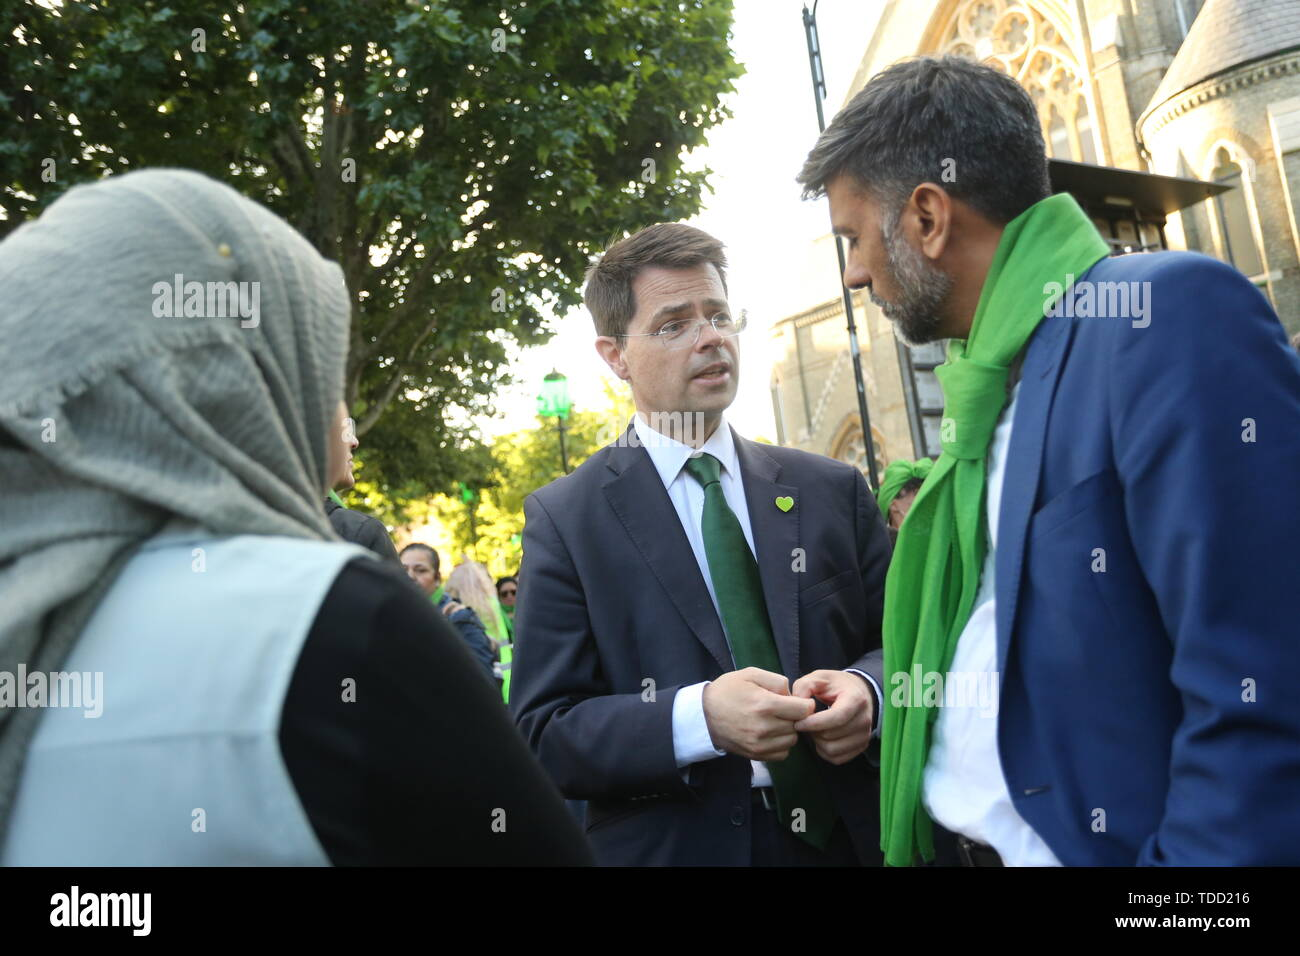 Secretary of State for Housing, Communities and Local Government James Brokenshire (left) during the wreath laying ceremony outside Grenfell Tower, London, to mark the two-year anniversary of the tower block fire. - Stock Image